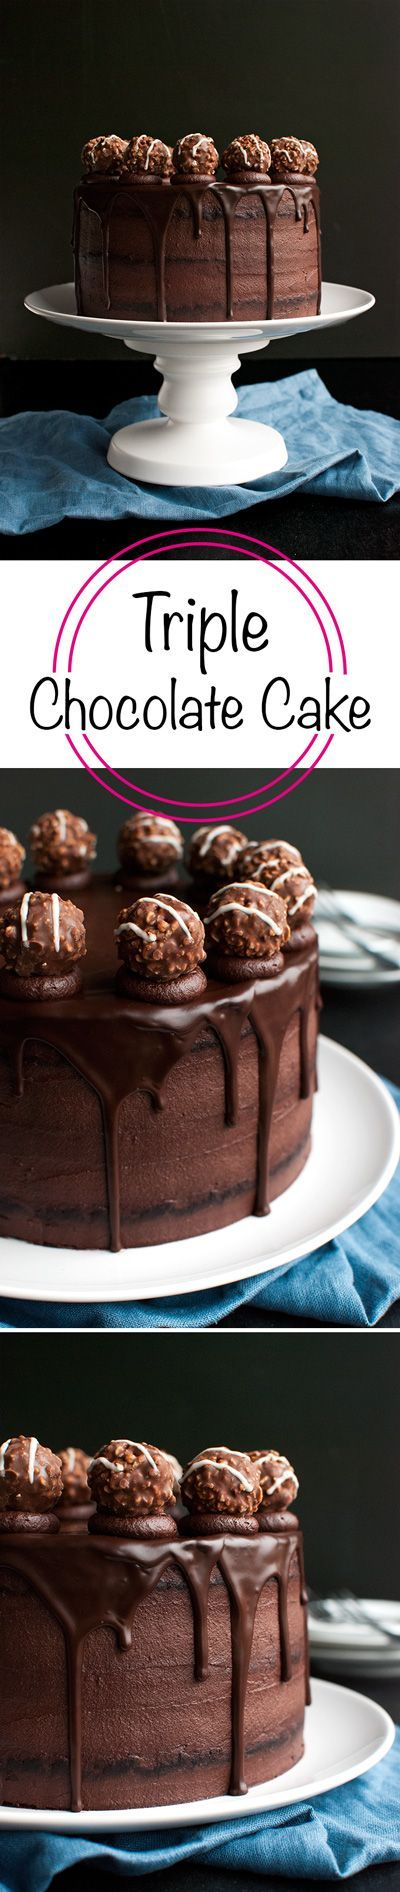 Triple Dark Chocolate Cake - chocolate cake filled with the BEST dark chocolate buttercream, and topped with chocolate ganache and truffles! Oh, and it's not that difficult to make for such an impressive cake, too! | http://thetoughcookie.com